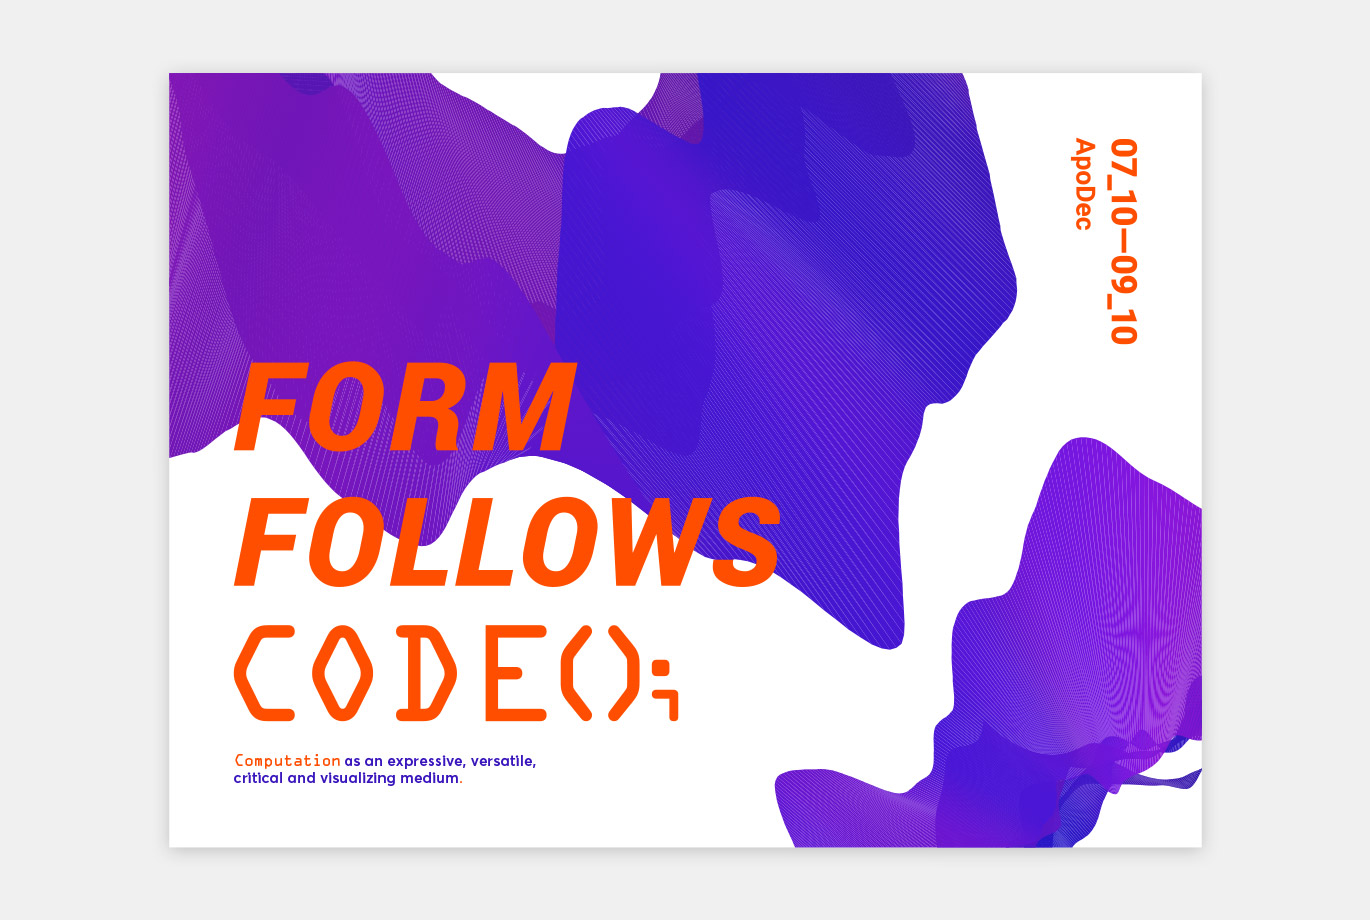 Form Follows Code project image